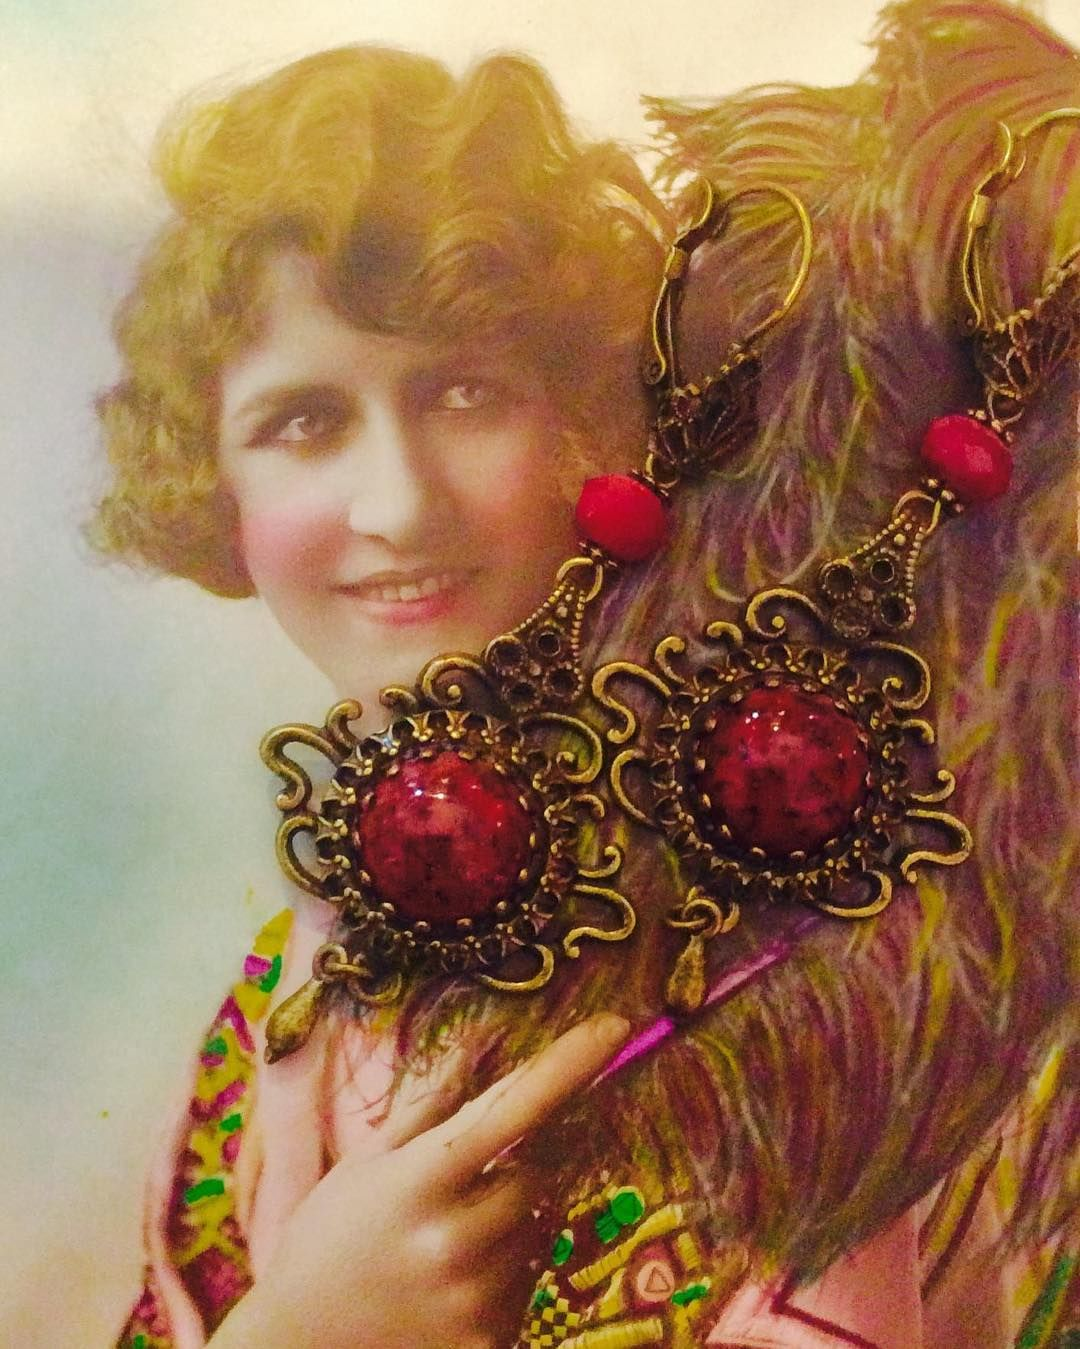 VICTORIAN INSPIRED EARRINGS.......WE ARE HOSTING A MOVING SALE ...10%-50% OFF SELECTED ITEMS.......OPEN 1PM-6PM  #moonshine Nettie#victorian#vintageinspired#vintagestyle#frenchquarter#followyournola#nola#neworleans#nolalove#nolastyle#southernstyle#southernliving#gorgeous#glamour#oldhollywood#texasstyle#nashvillestyle#vintagelife#accessory#adornments by moonshinenettie